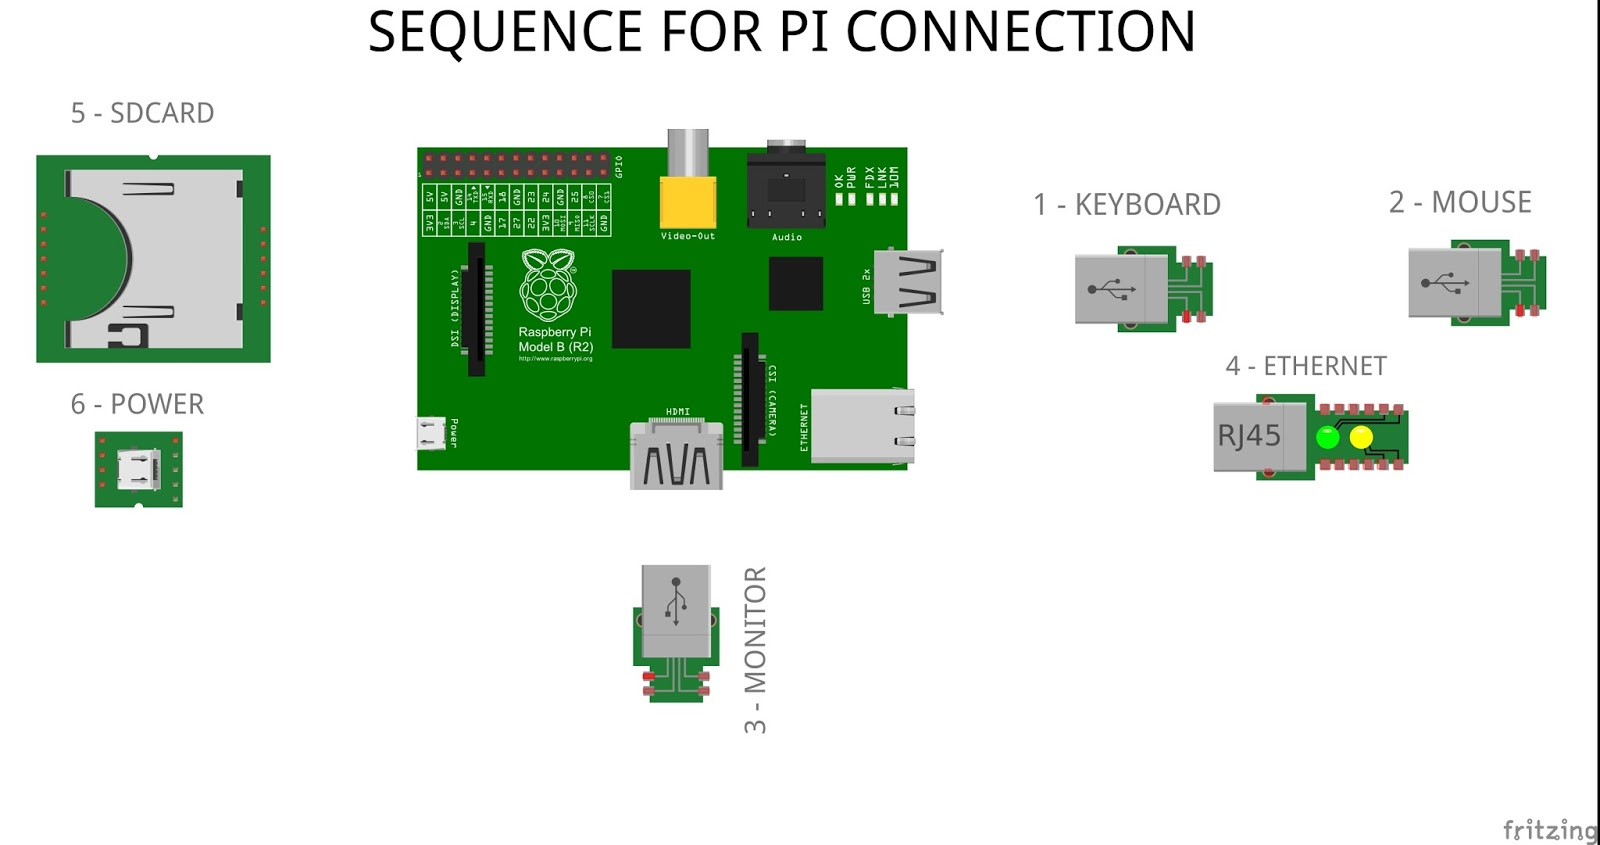 07 Raspiserie How To Build A Rest On Pi In Javascript Jungletronics Wiring Diagram 3 5 Mm Headphone Jack Gecko G540 Wired Network Setup 1 Go Ahead And Preparing The Hardware Plug Your Usb Keyboard Mouse Monitor An Ethernet Cable Plugged Into Home Router